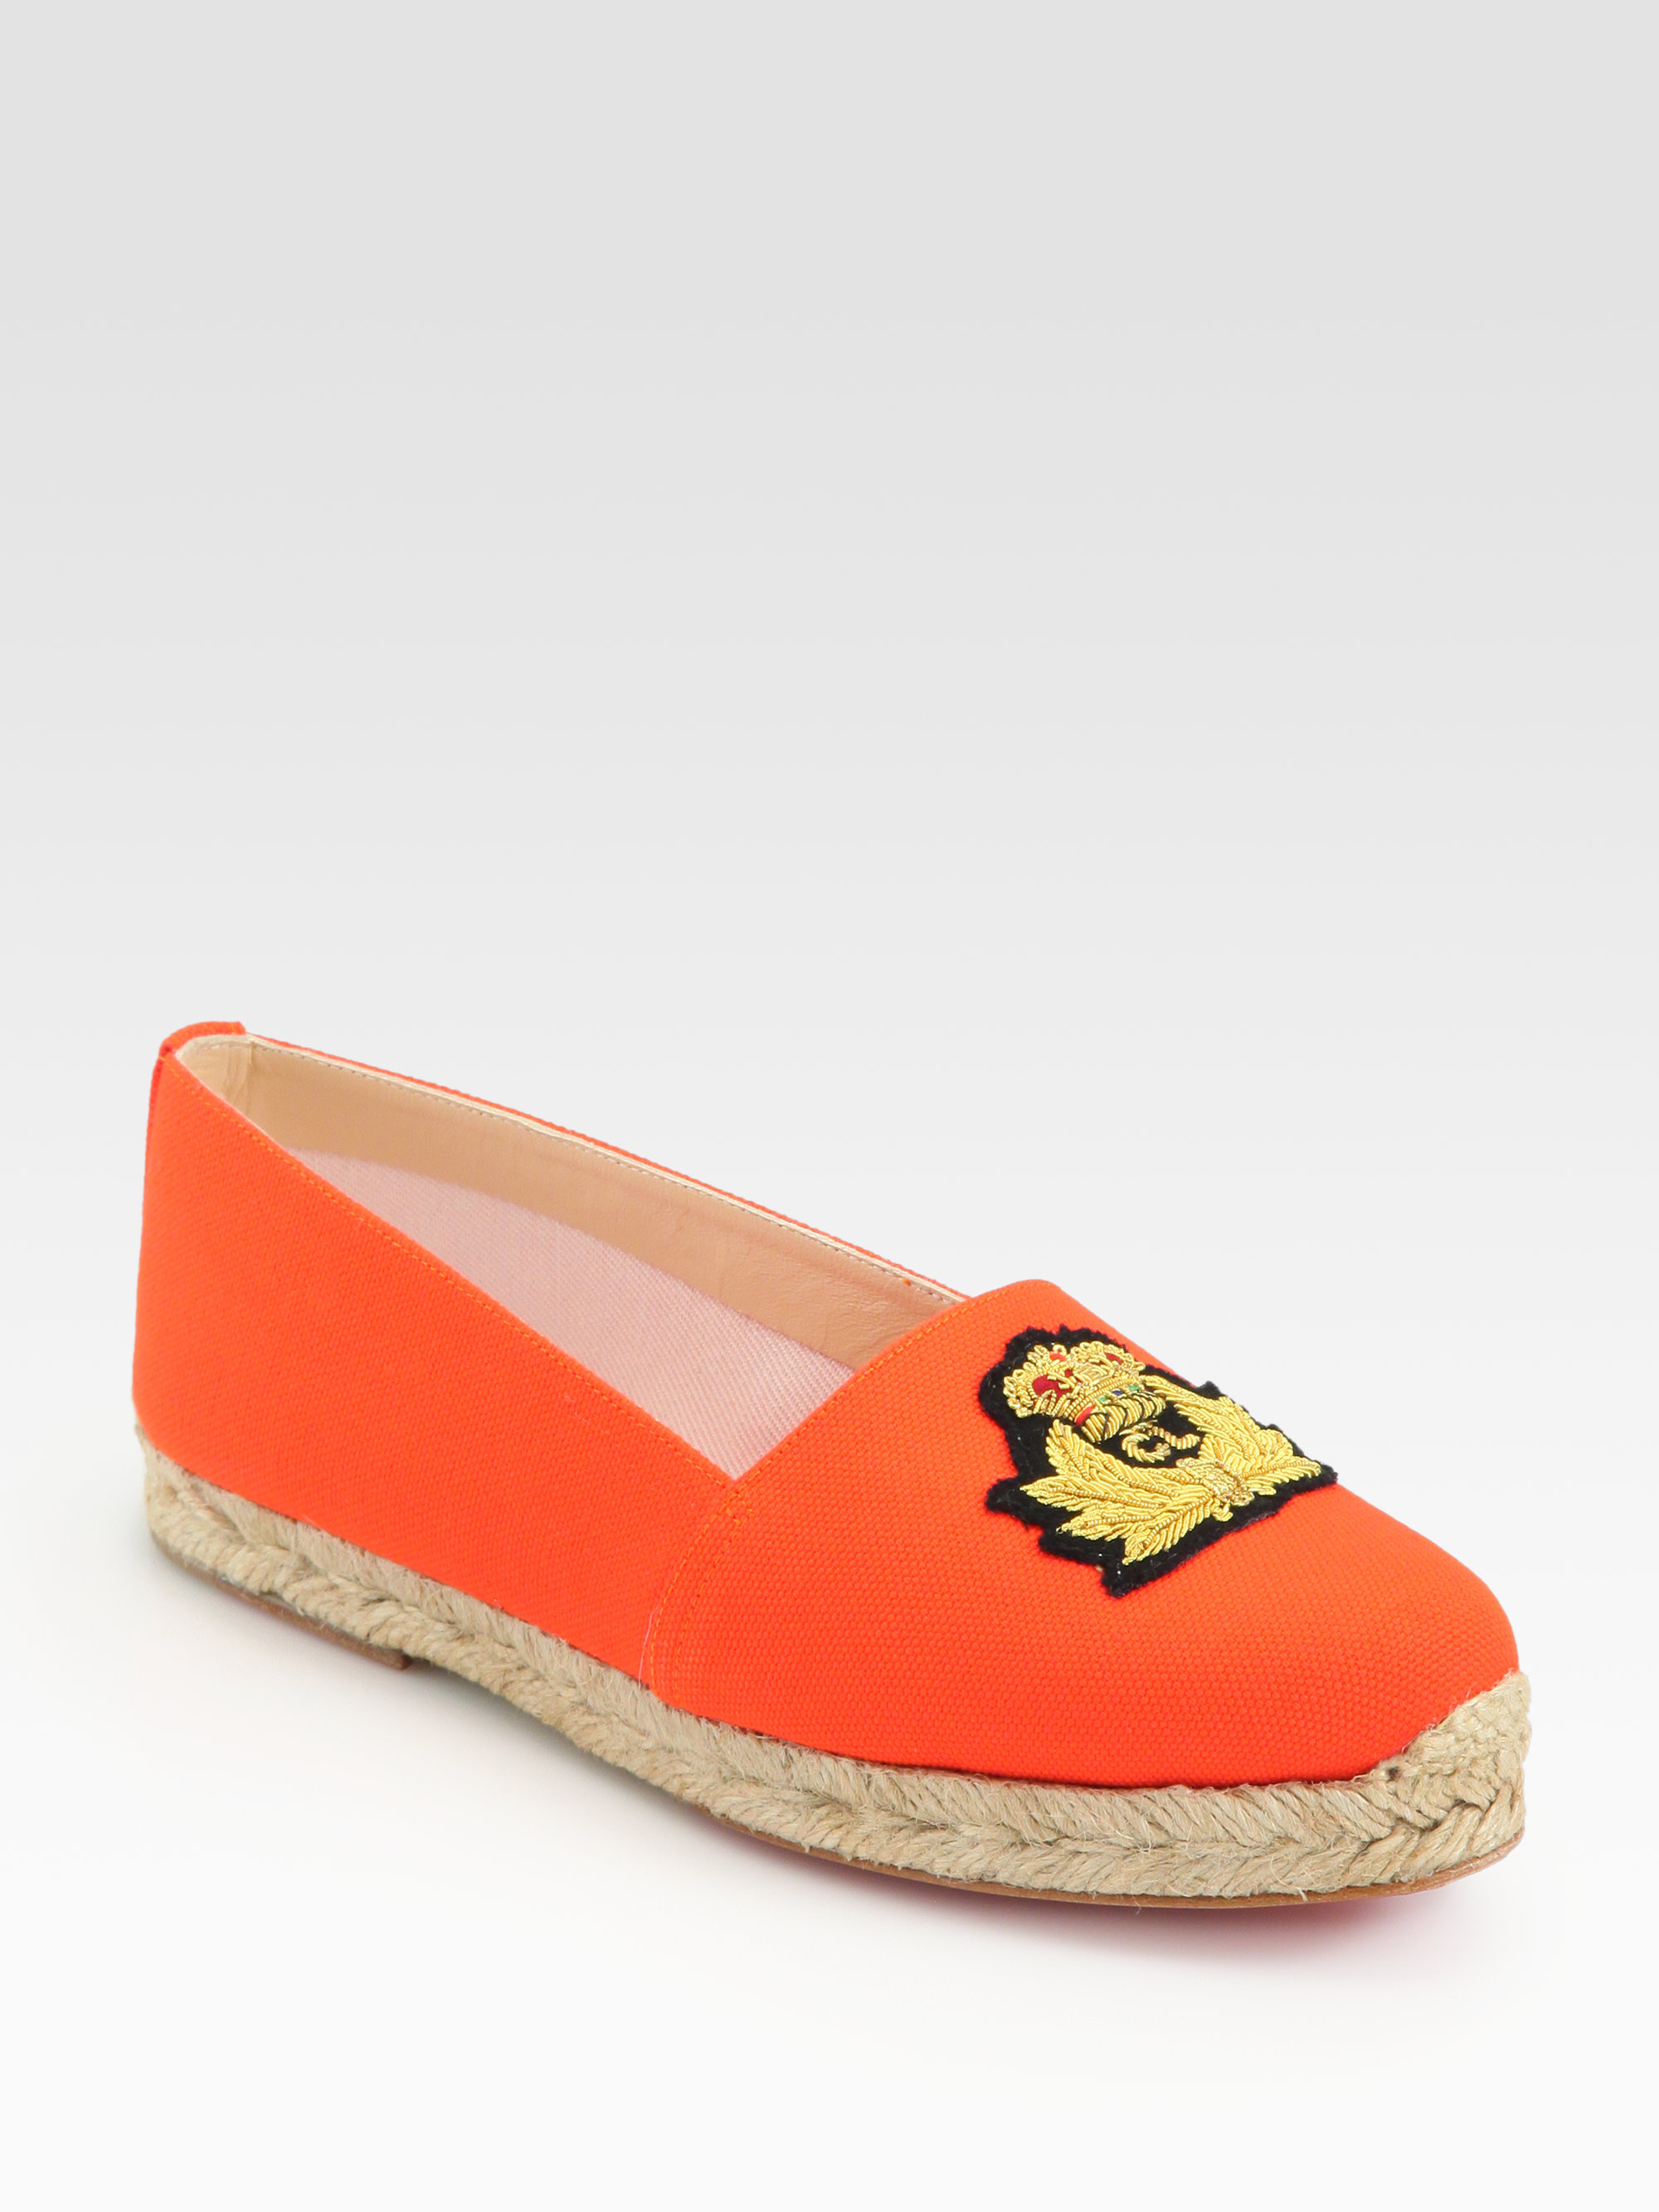 meet a490f 61f71 Christian Louboutin Orange Galia Canvas Espadrilles